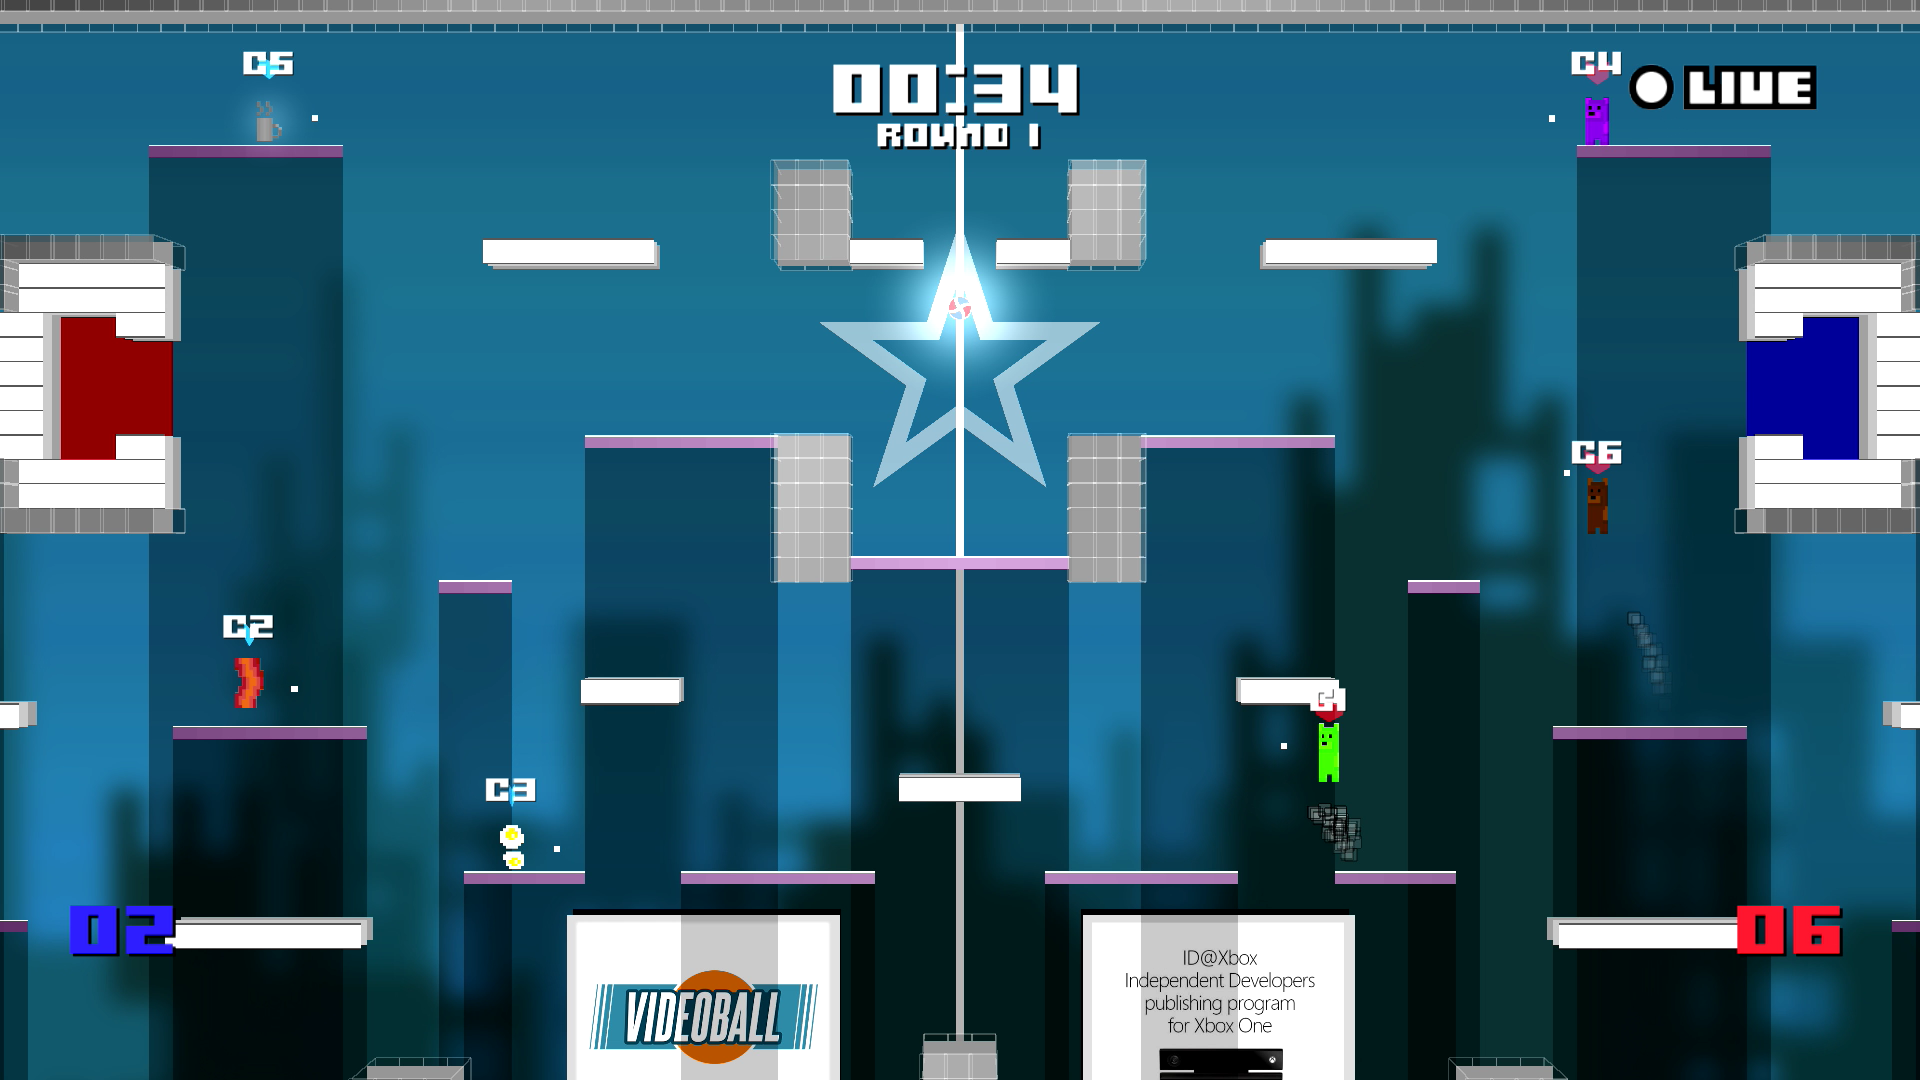 #IDARB screenshot Games with Gold Xbox Live One March